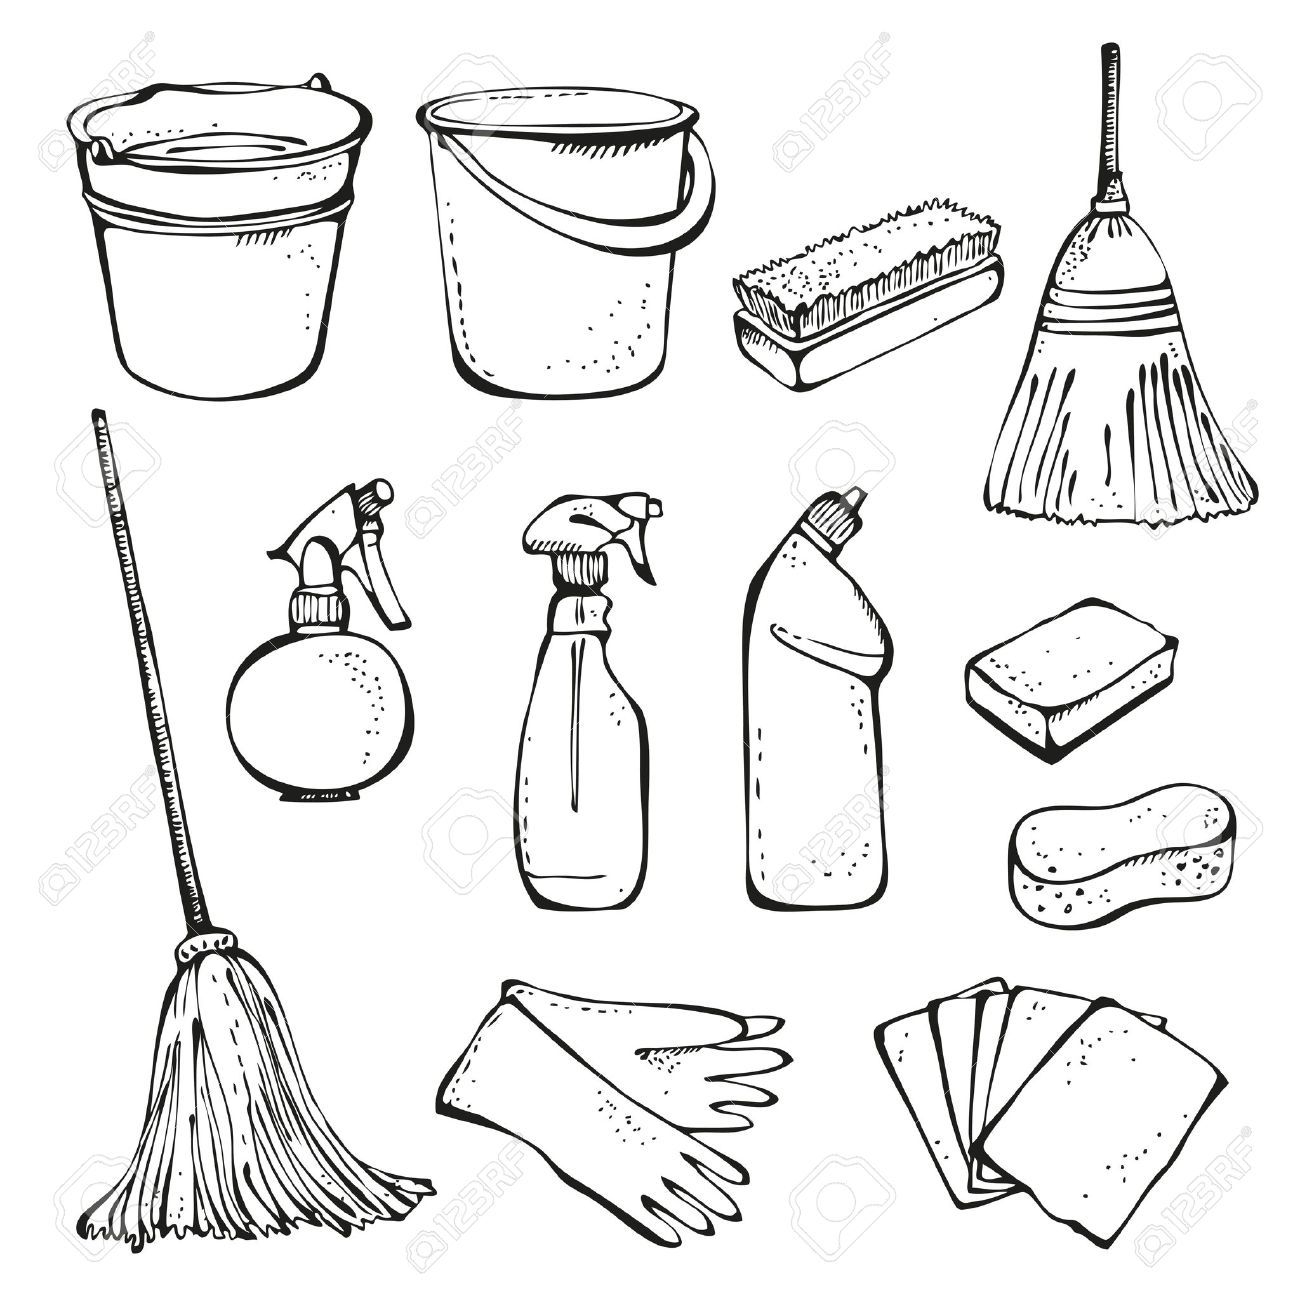 Home Office Cleaning Supplies Doodle Clip Art Icons